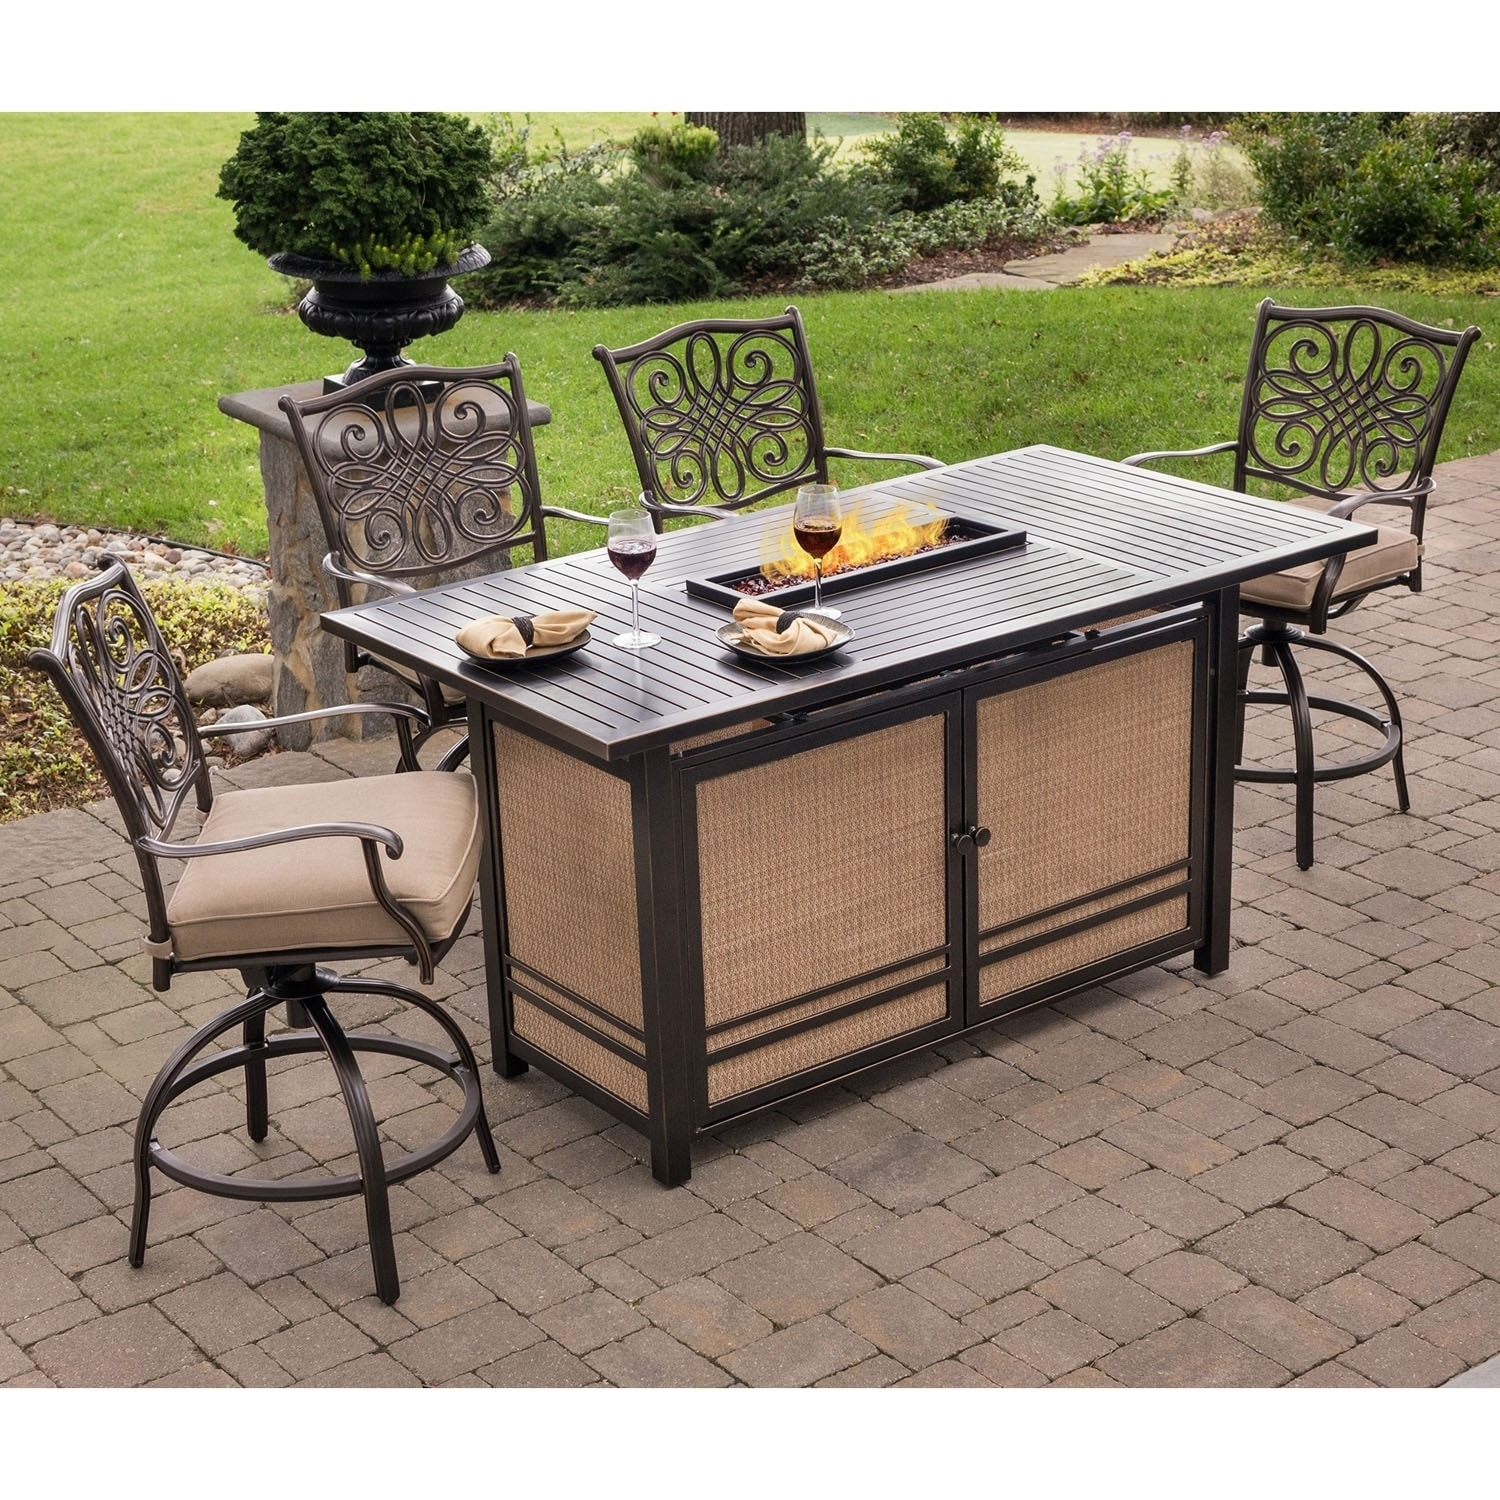 Hanover Traditions 5-Piece High-Dining Bar Set in Tan wit...